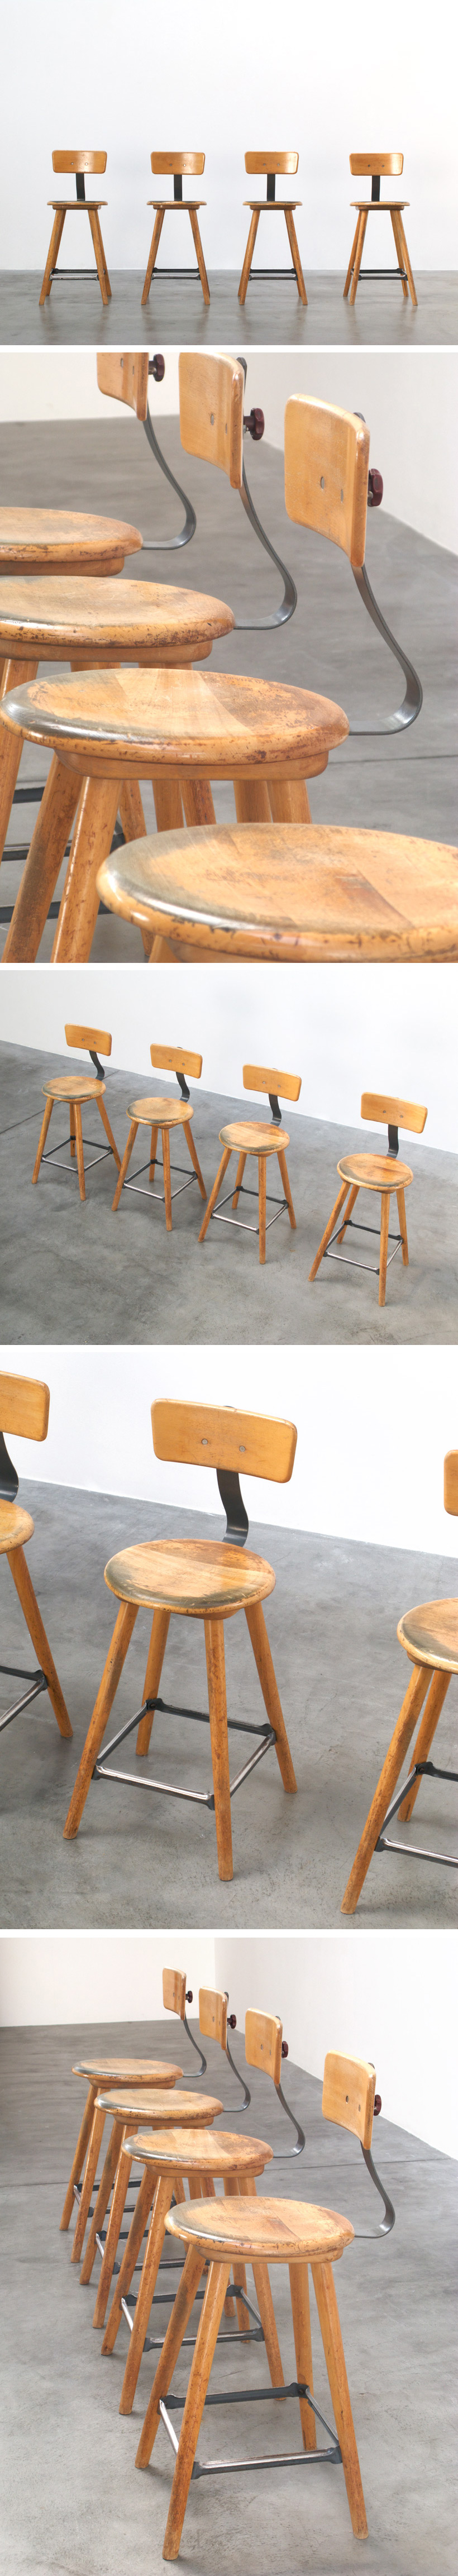 4 University Lab stools Large